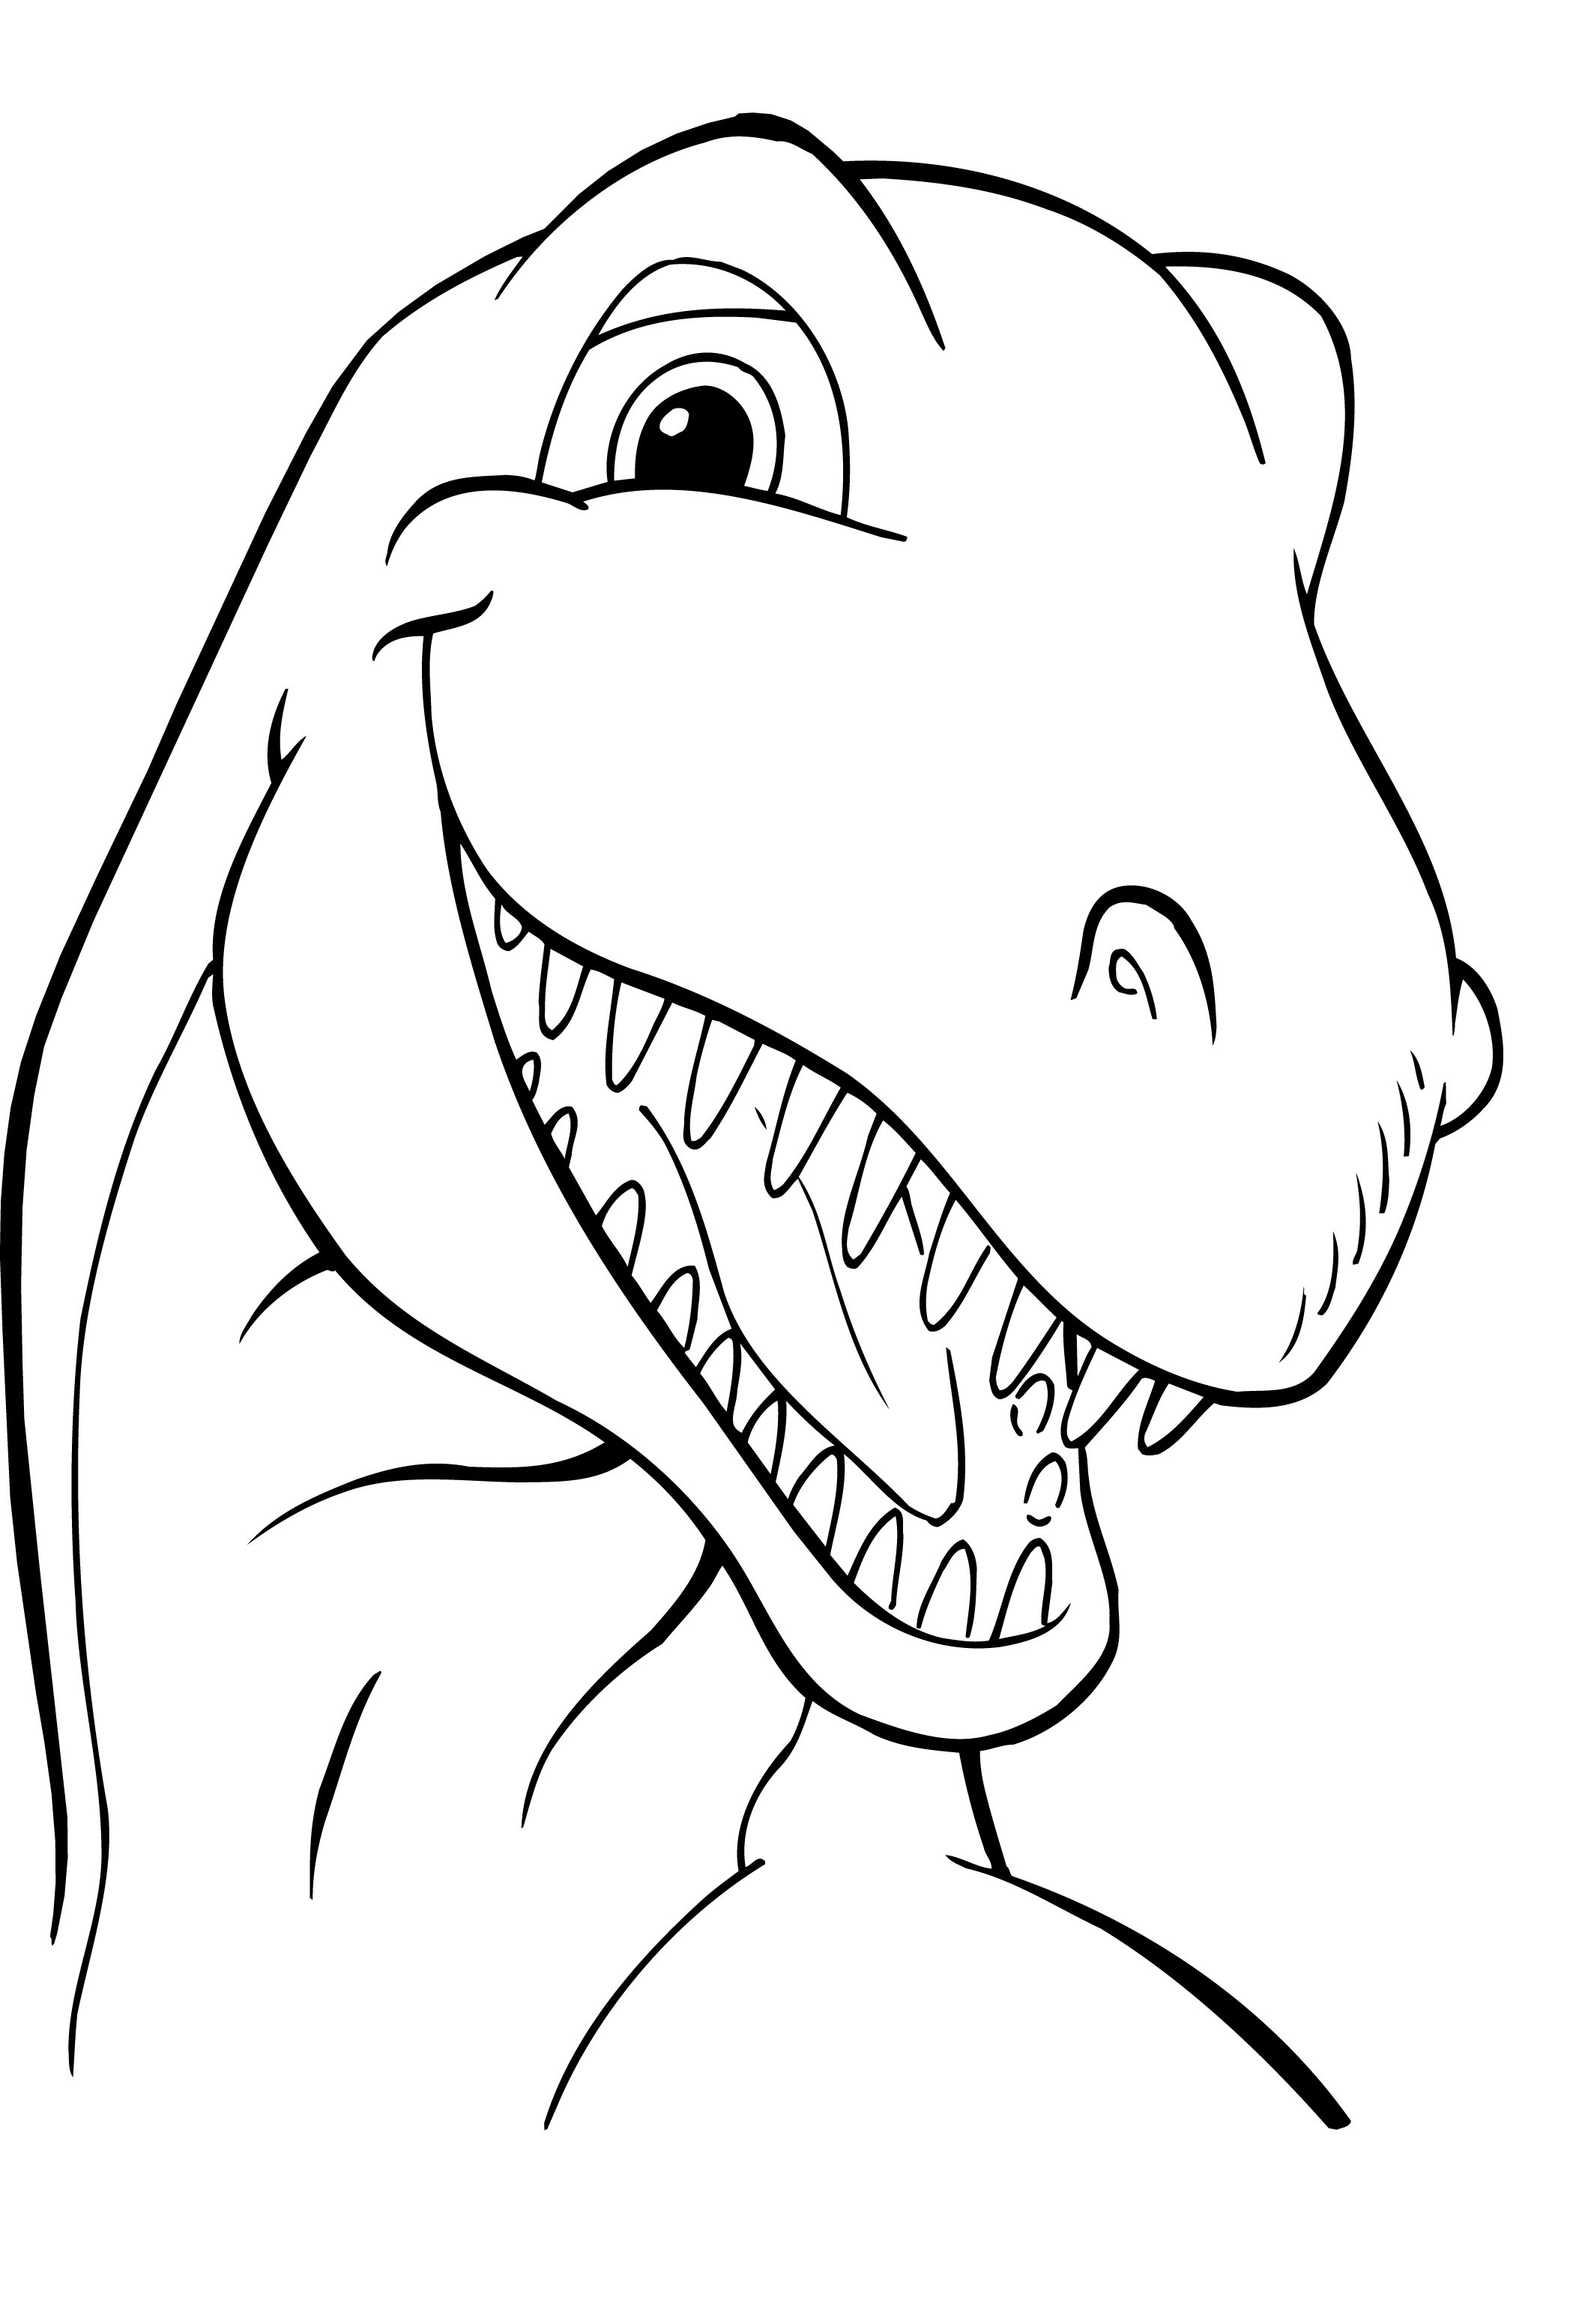 Dinosaur Coloring Pages Free Printable Dinosaur Coloring